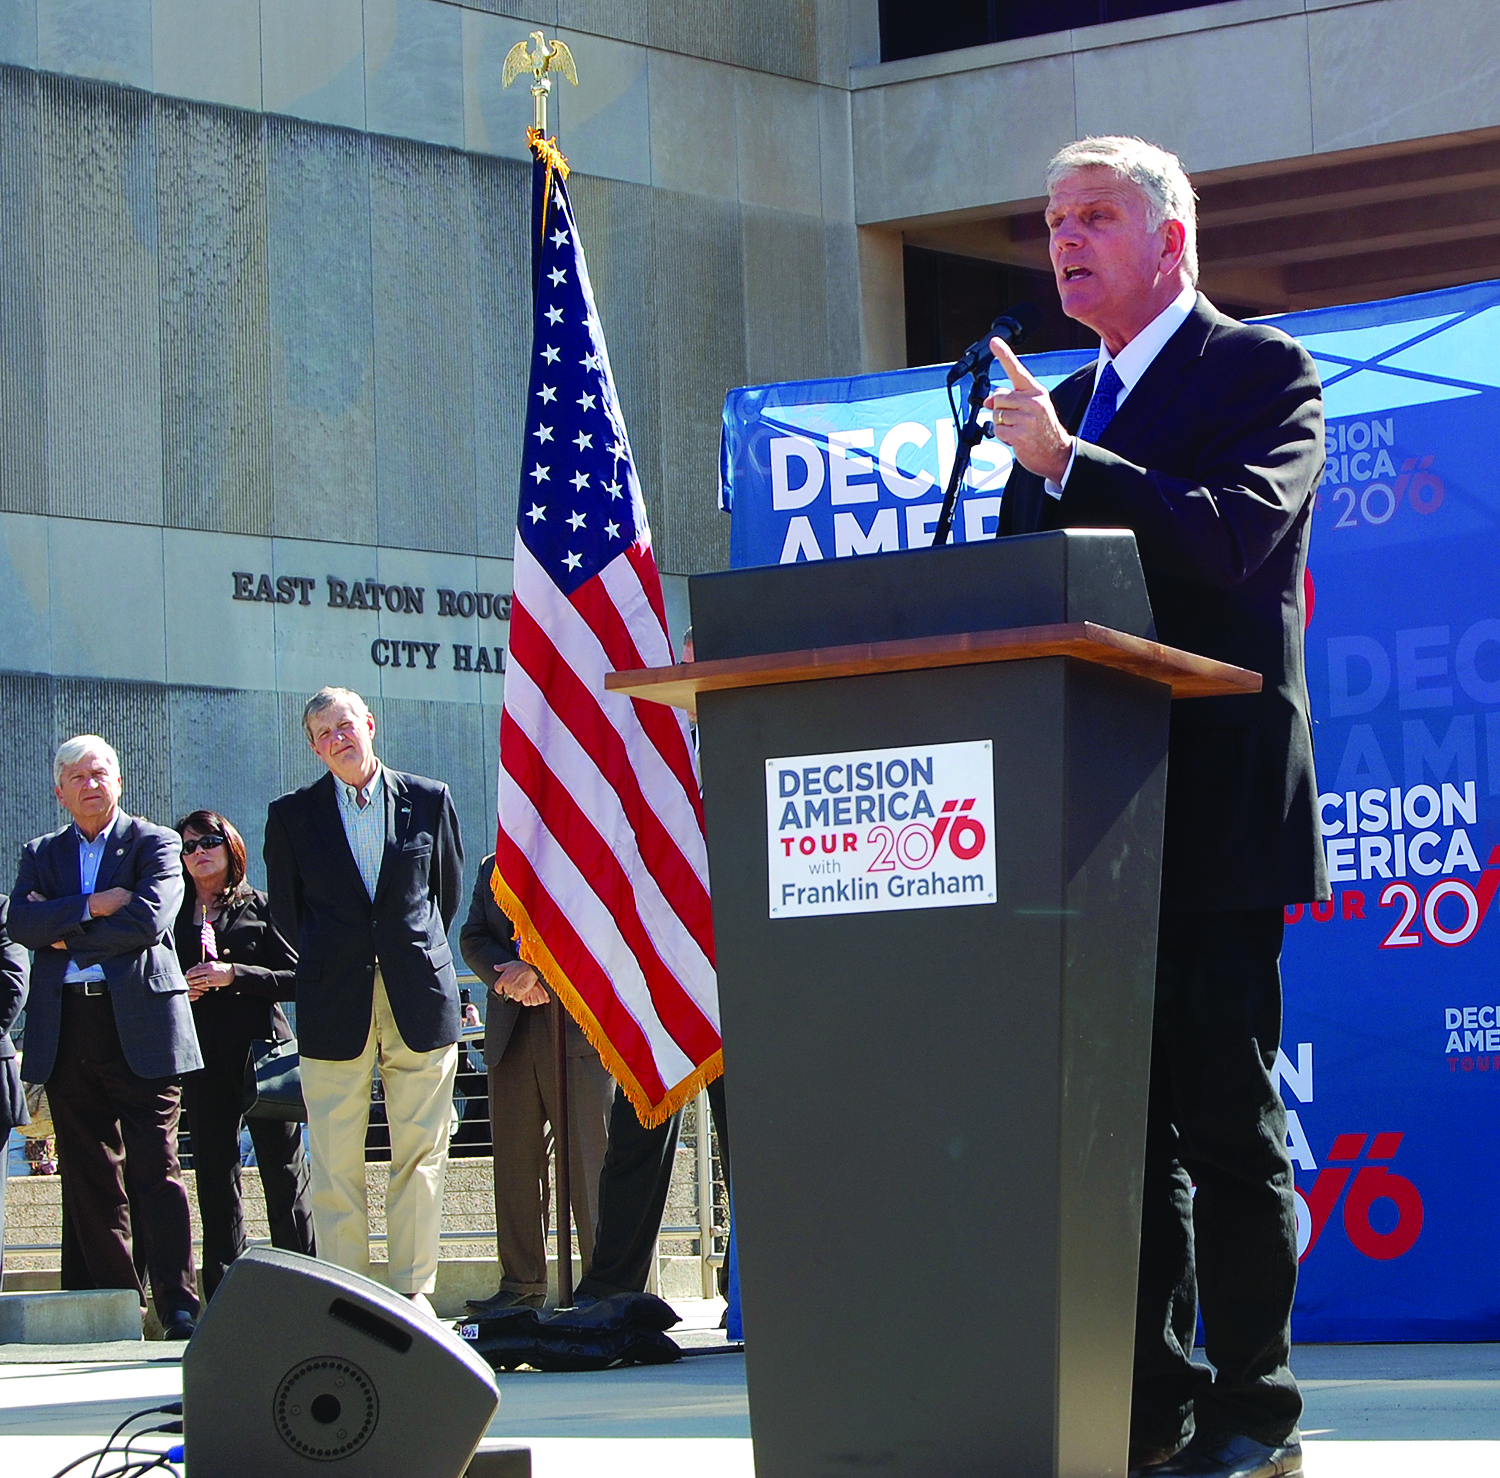 """Franklin Graham called 3,000 to 4,000 people attending a """"Decision America Tour"""" rally in Baton Rouge to """"fervently pray"""" for America, on Jan. 13. Photo by Mark H. Hunter"""